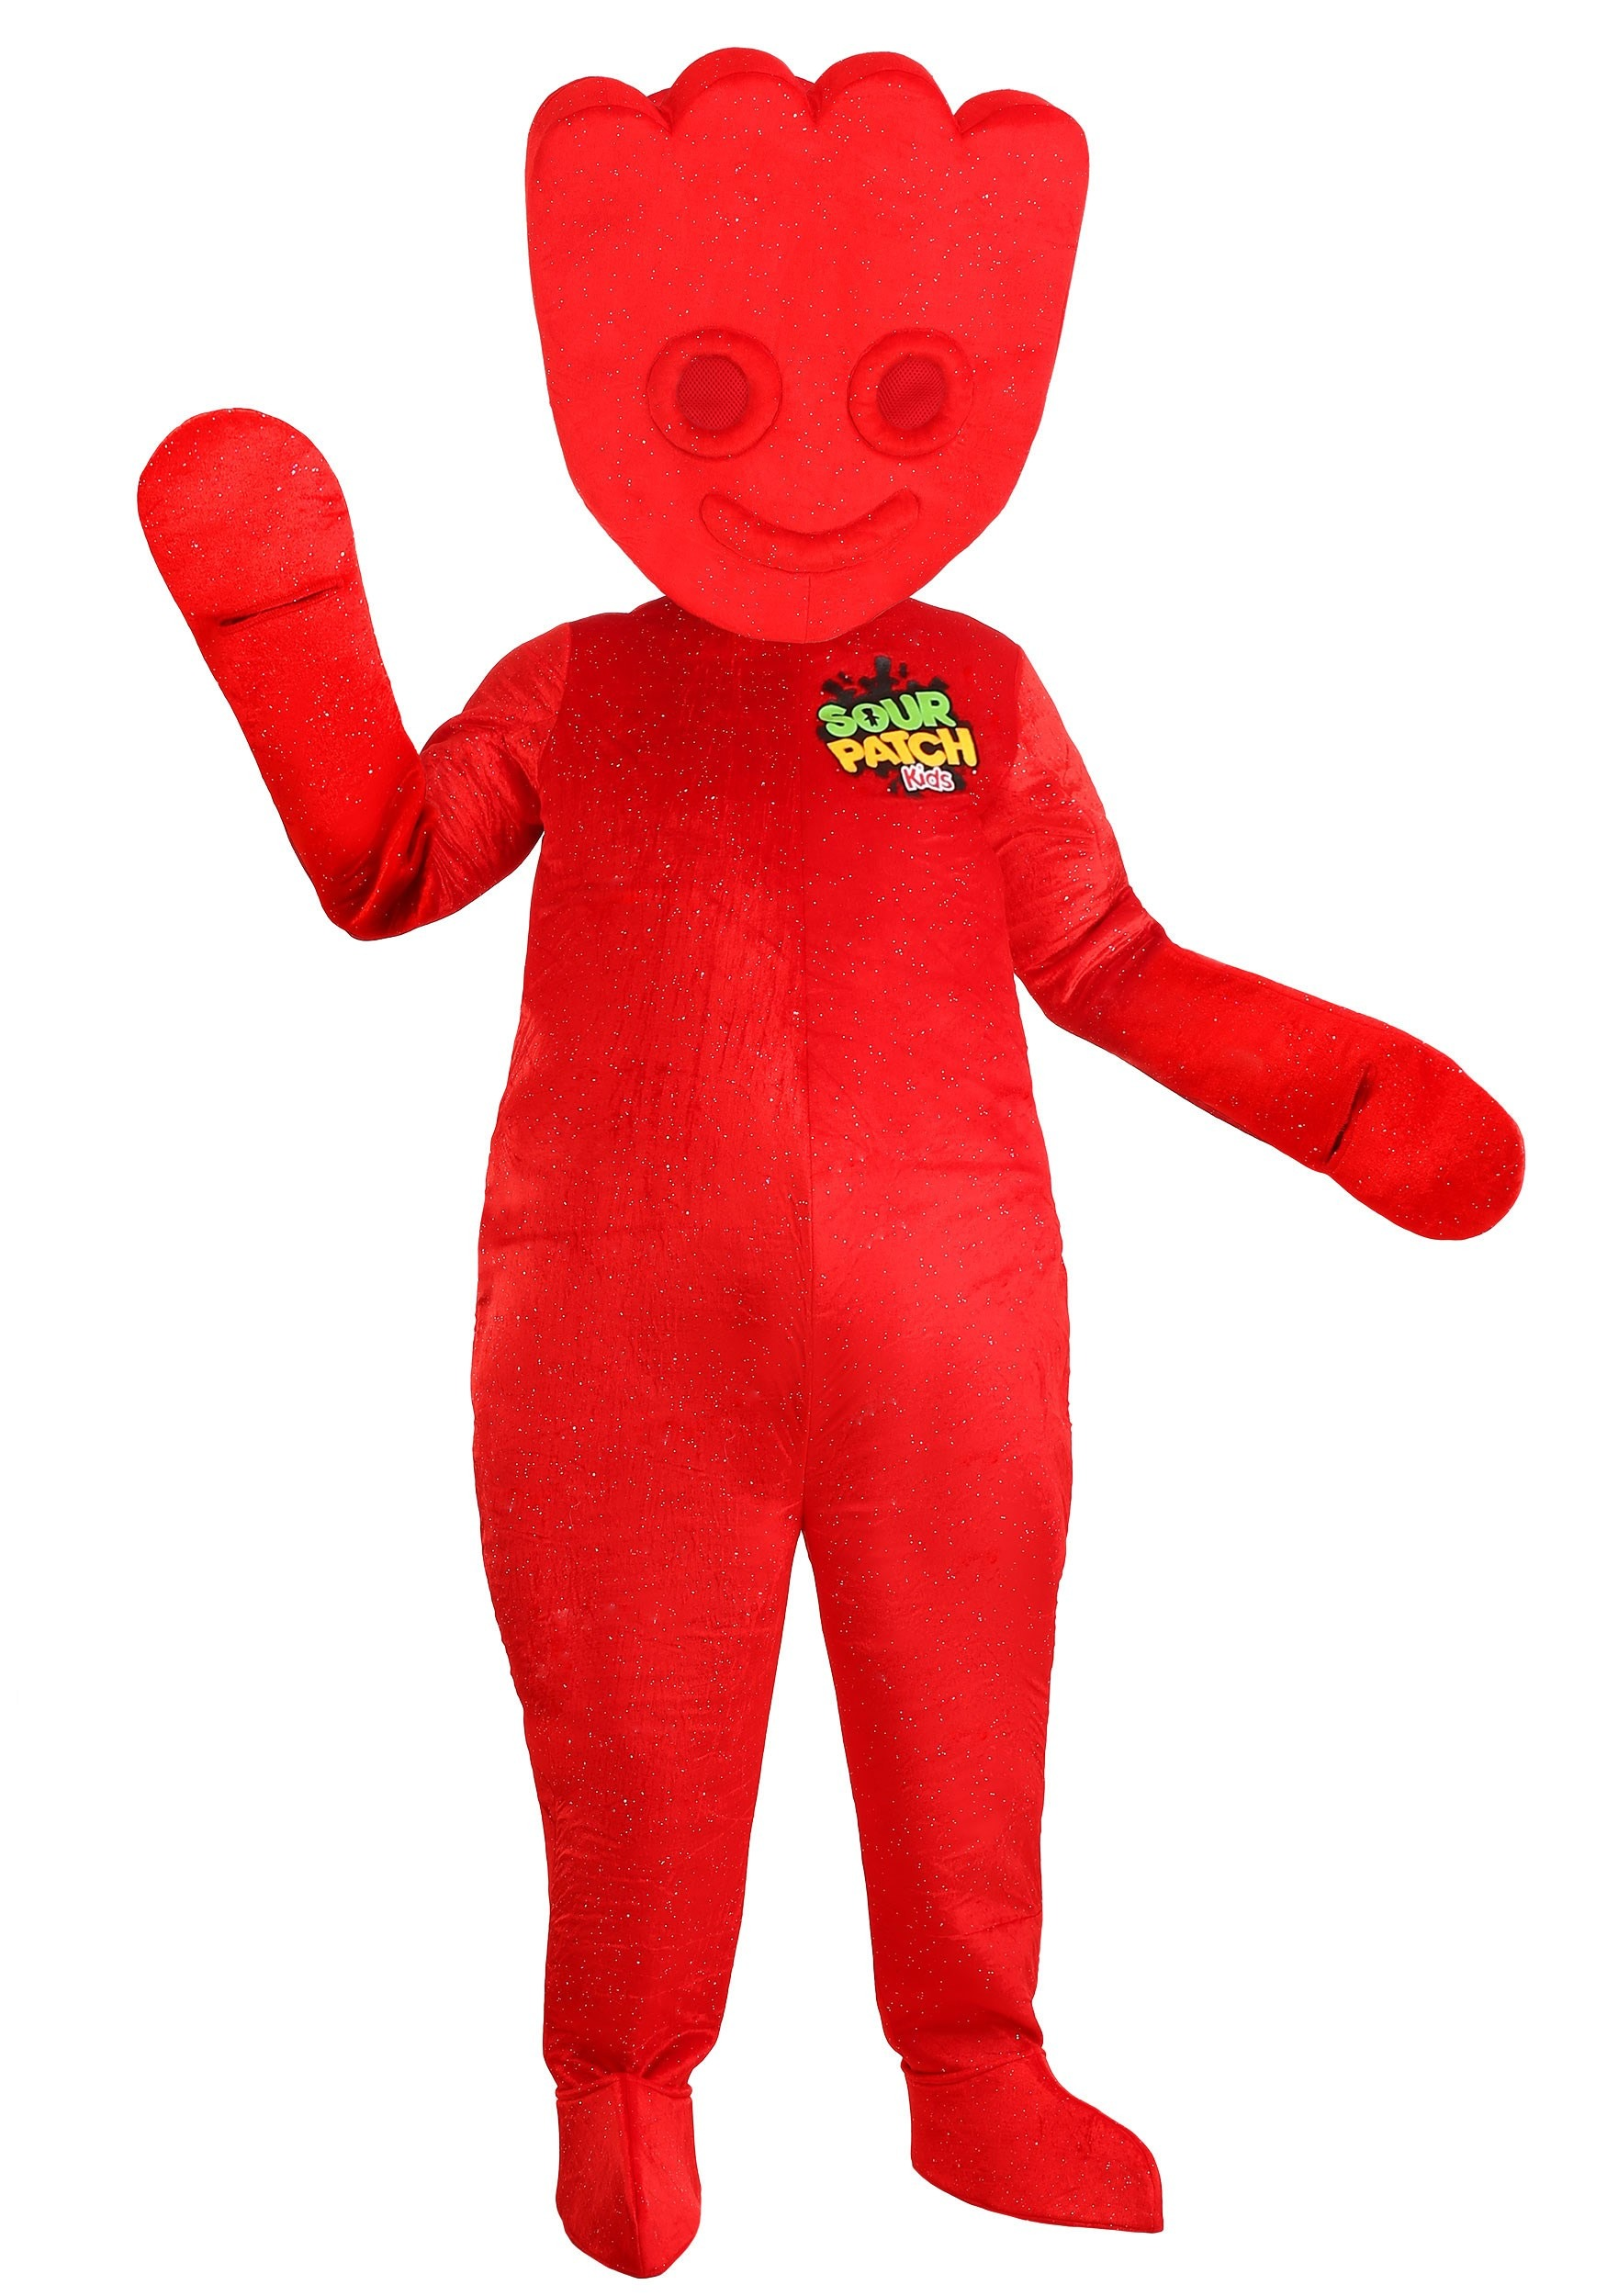 Red Sour Patch Kids Costume for Adults